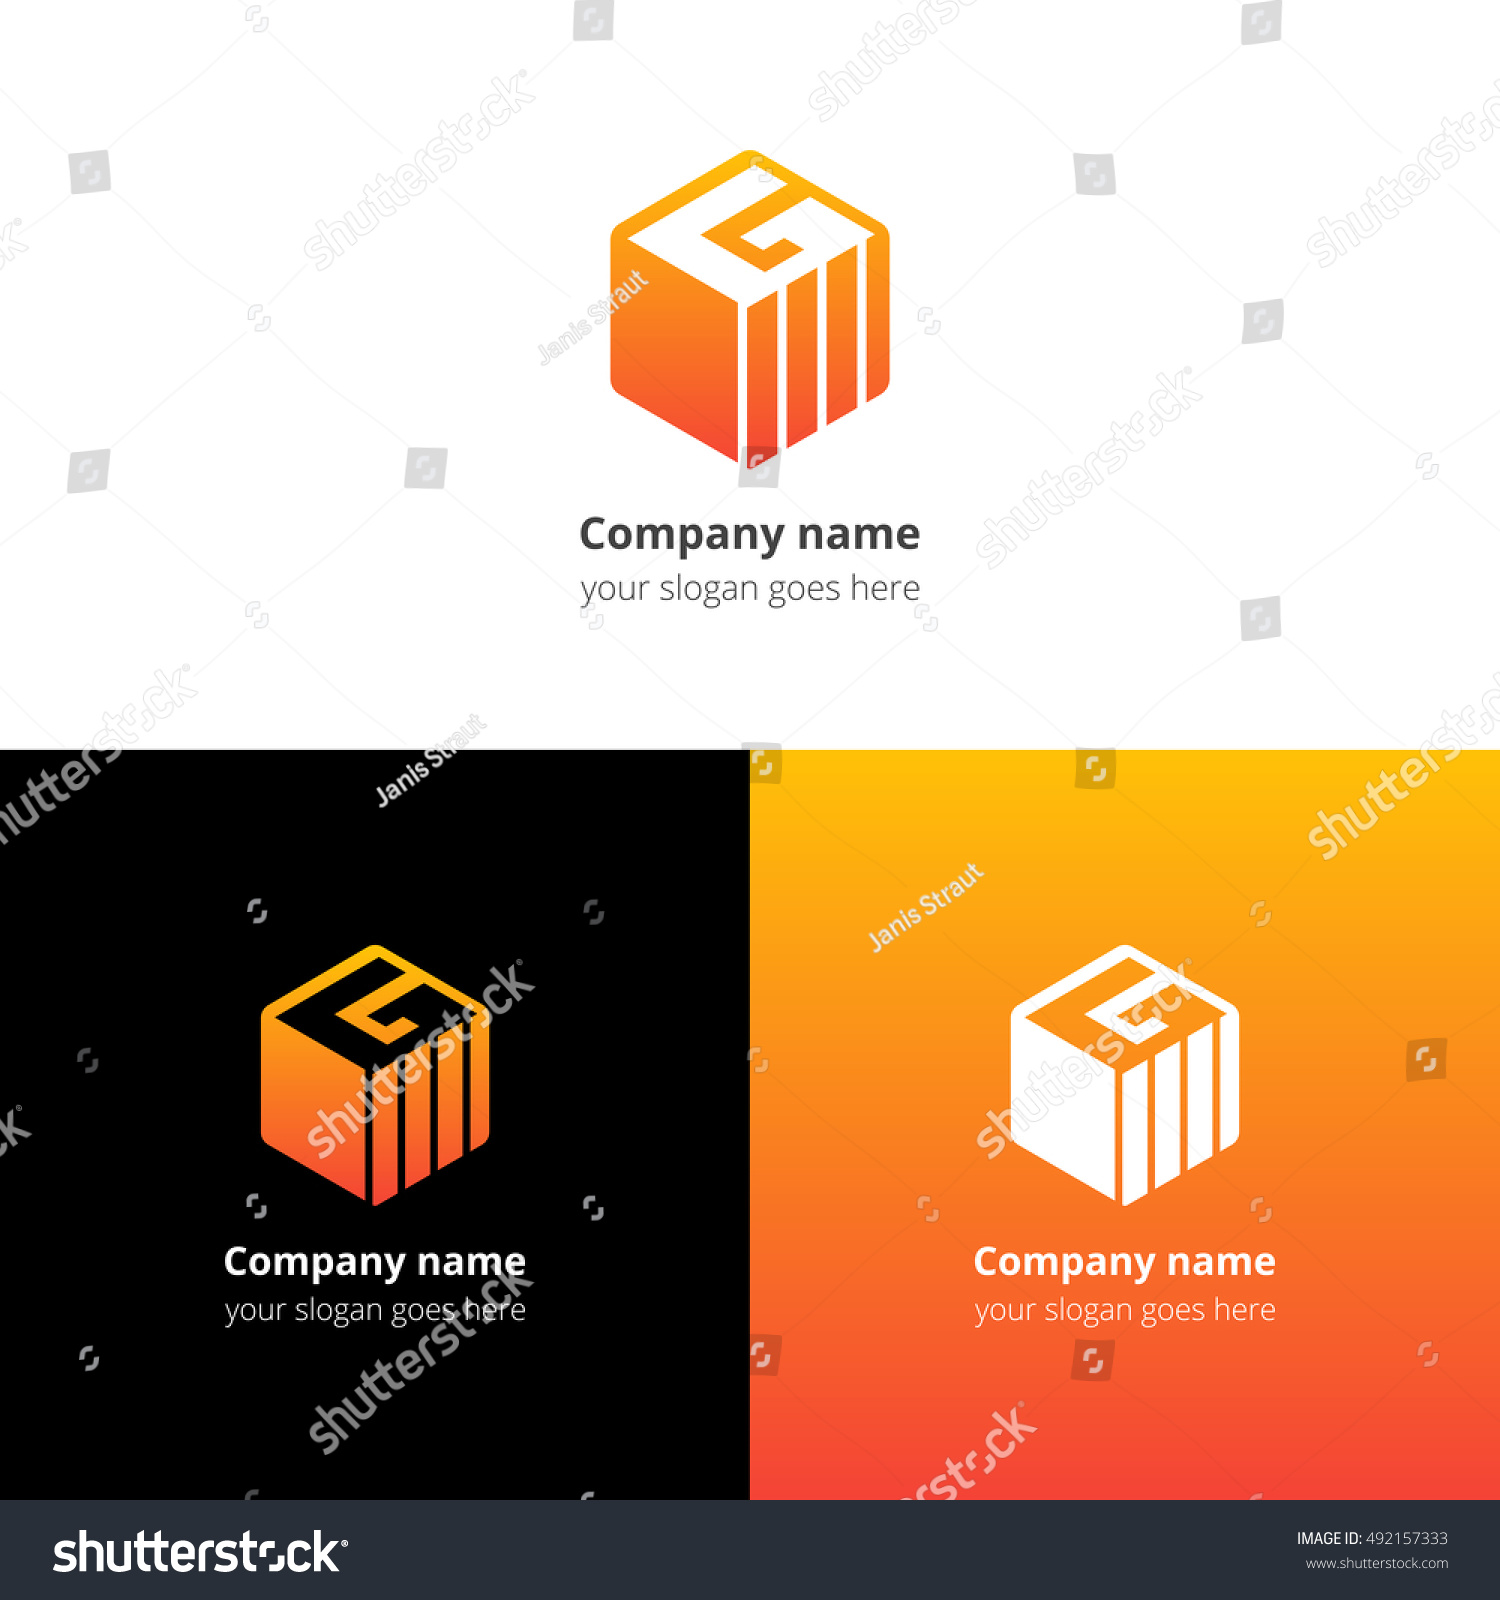 Royalty Free Letter G In Cube Logo Icon With Trend 492157333 Diagram Template Yellow Orange Gradient Color Minimalism Flat Vector Logotype Design Stock Photo